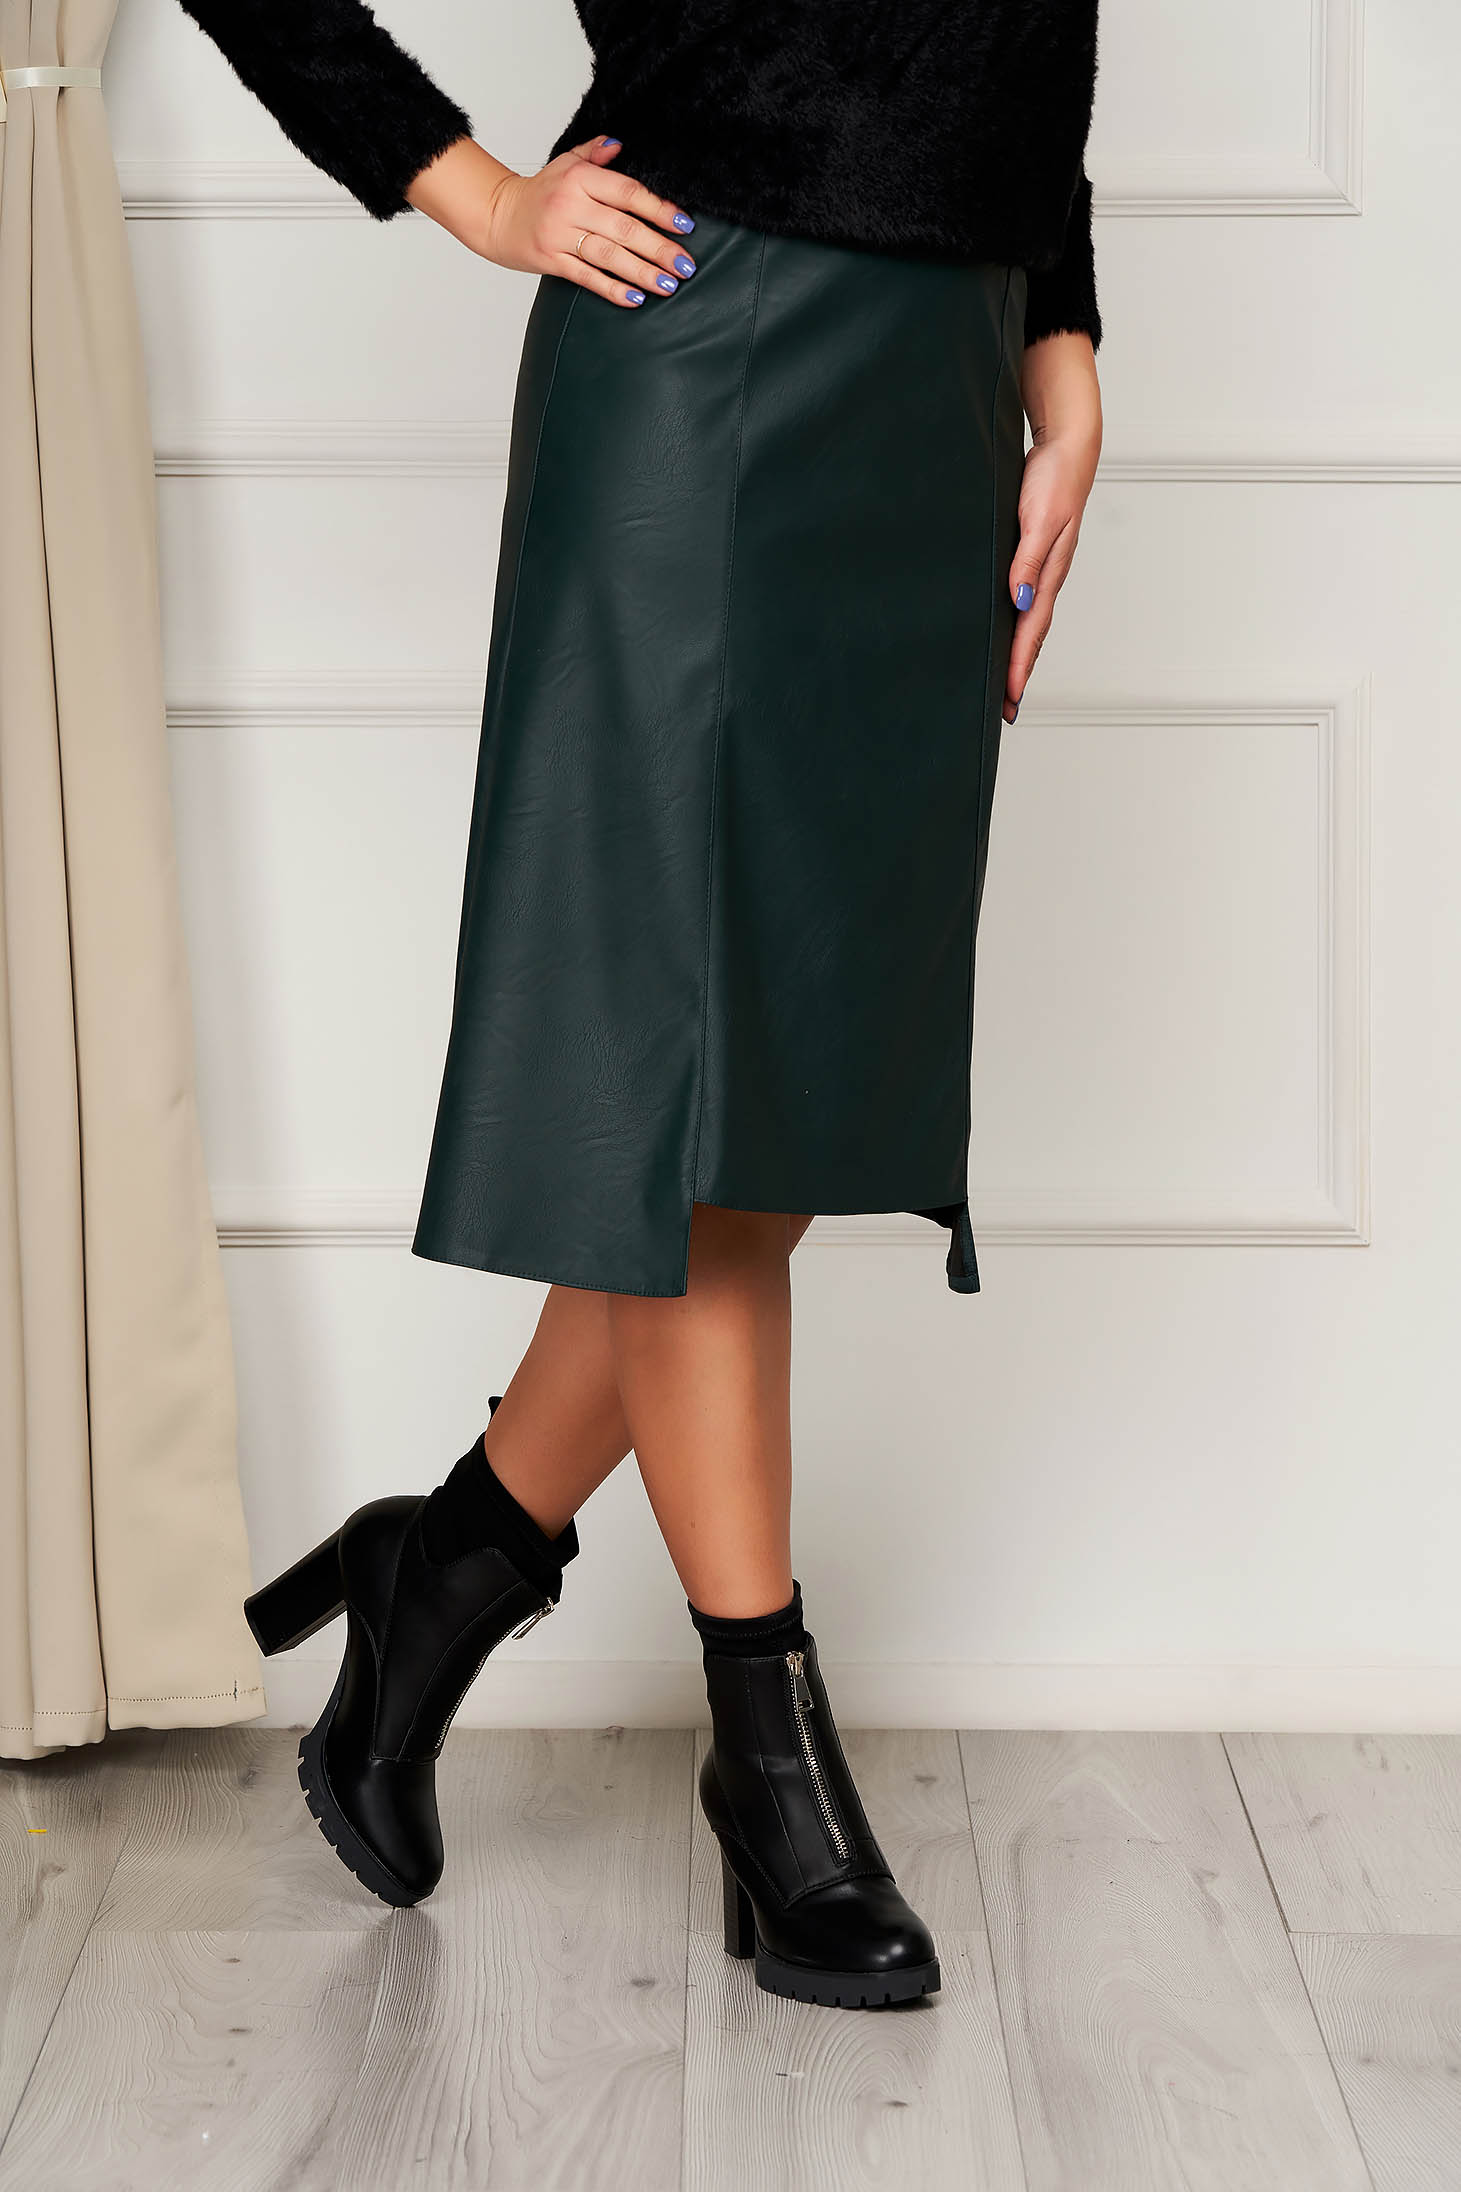 Skirt StarShinerS green midi high waisted from ecological leather office